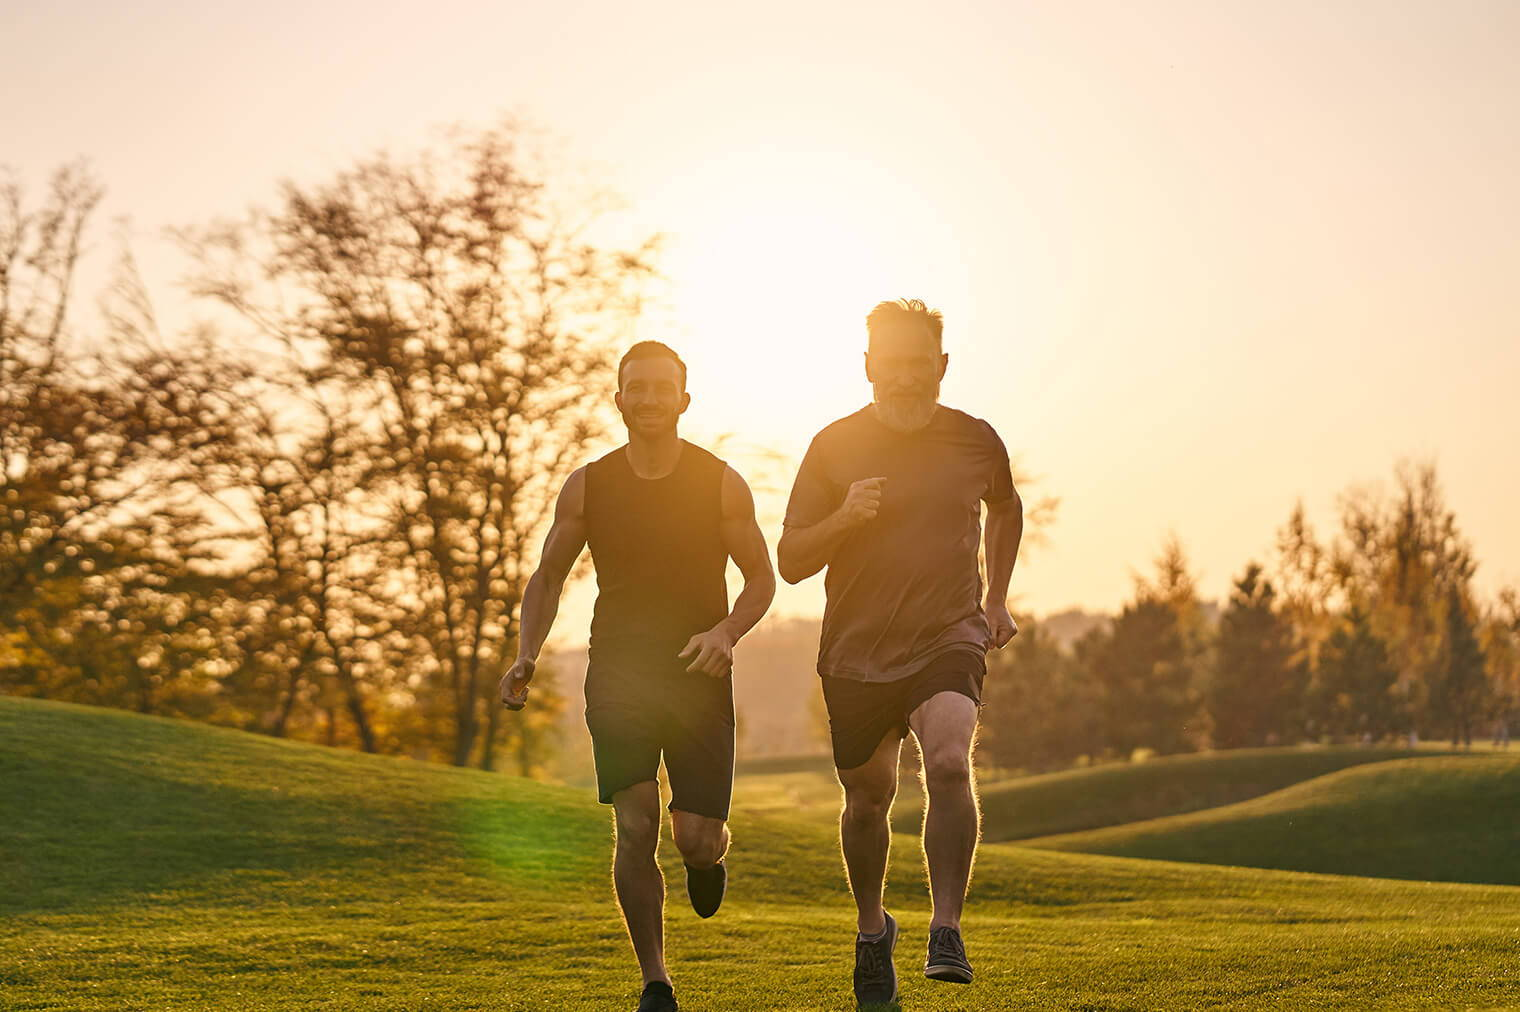 Two Men Running In A Park